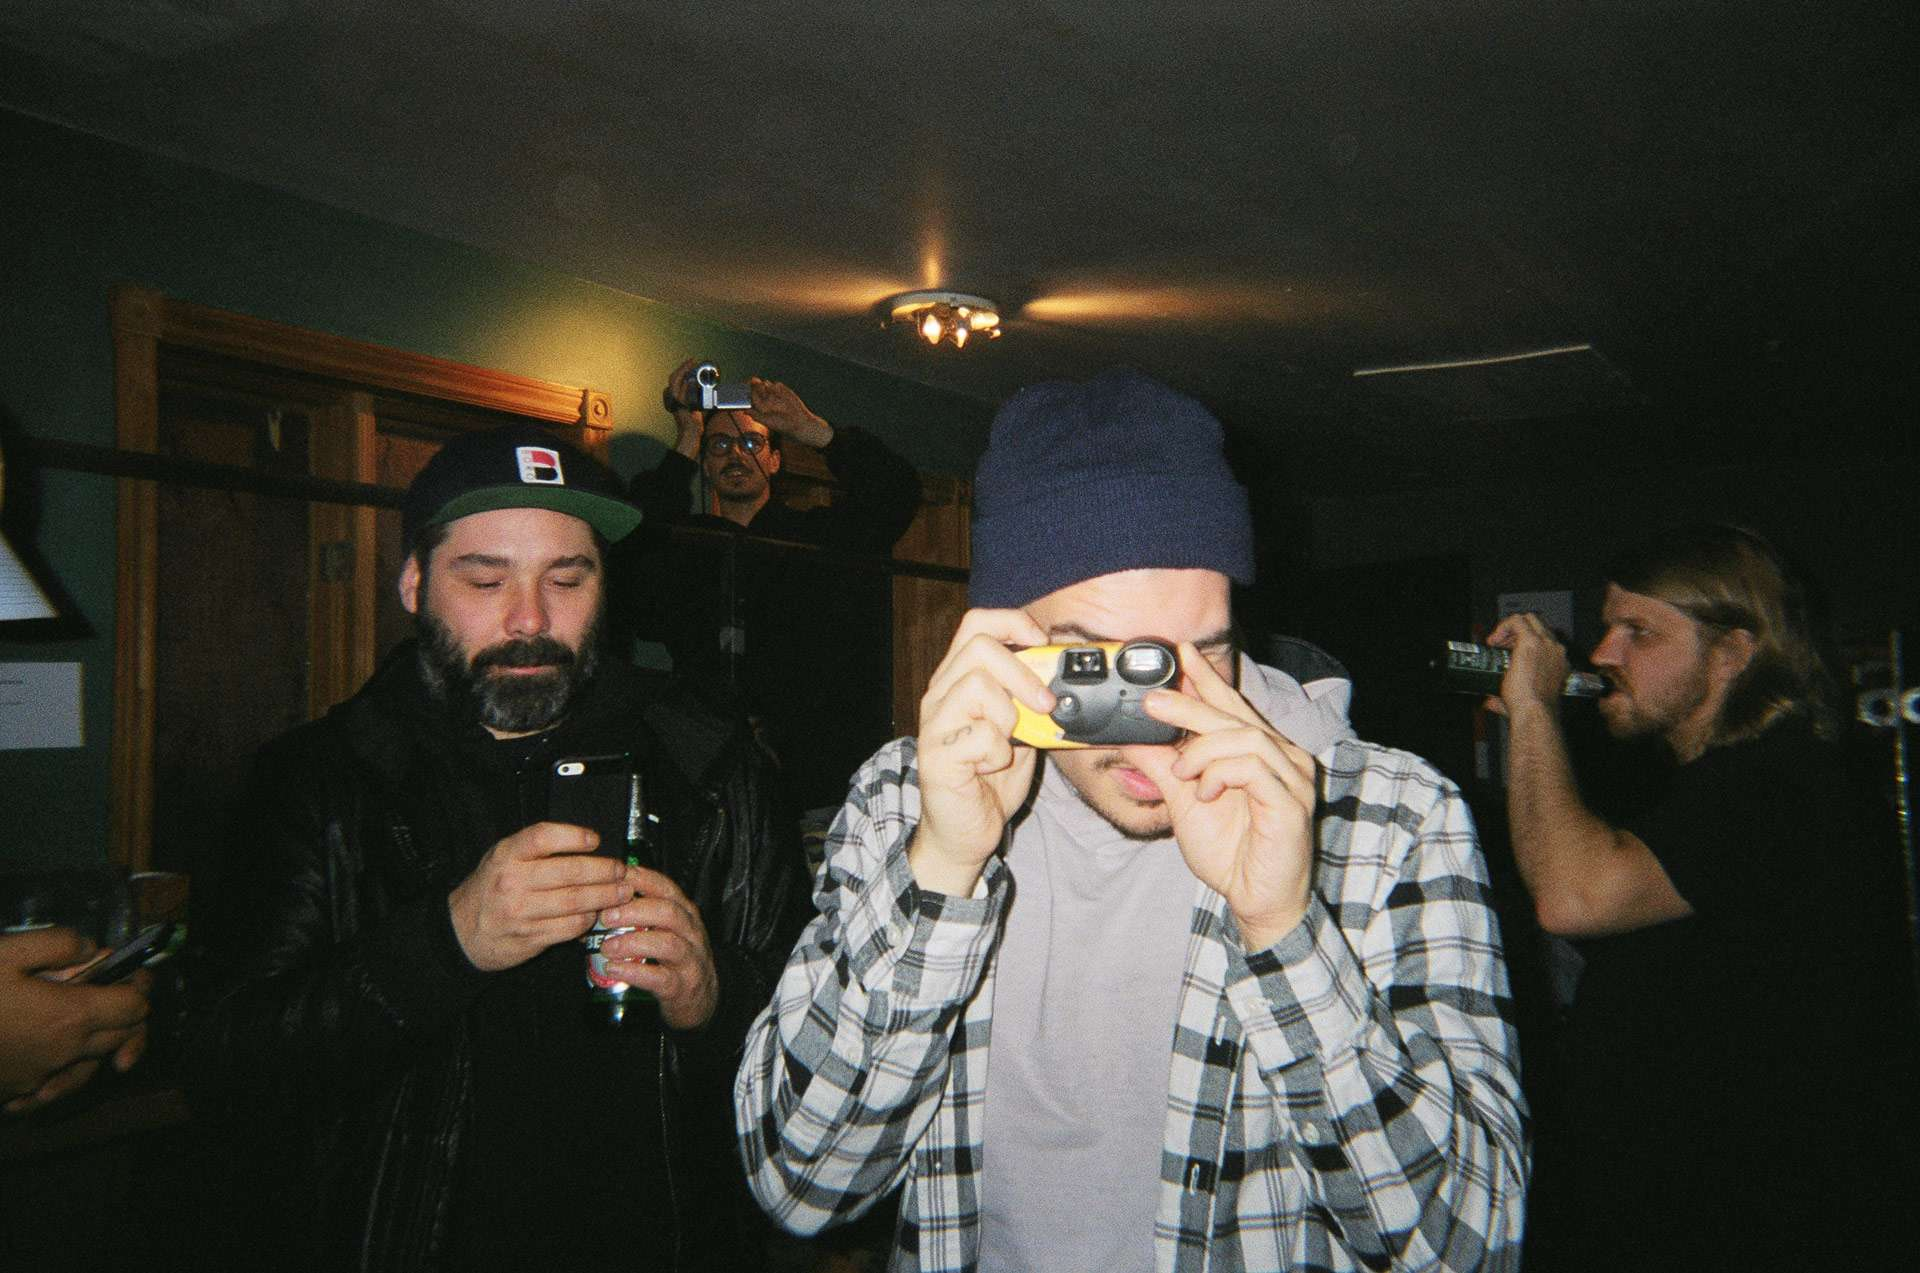 rapper Koriass taking picture with disposable camera in behind the scenes of L'Osstidfilm documentary filmed by Vincent Ruel-Cote from Les Gamins about L'Osstidtour